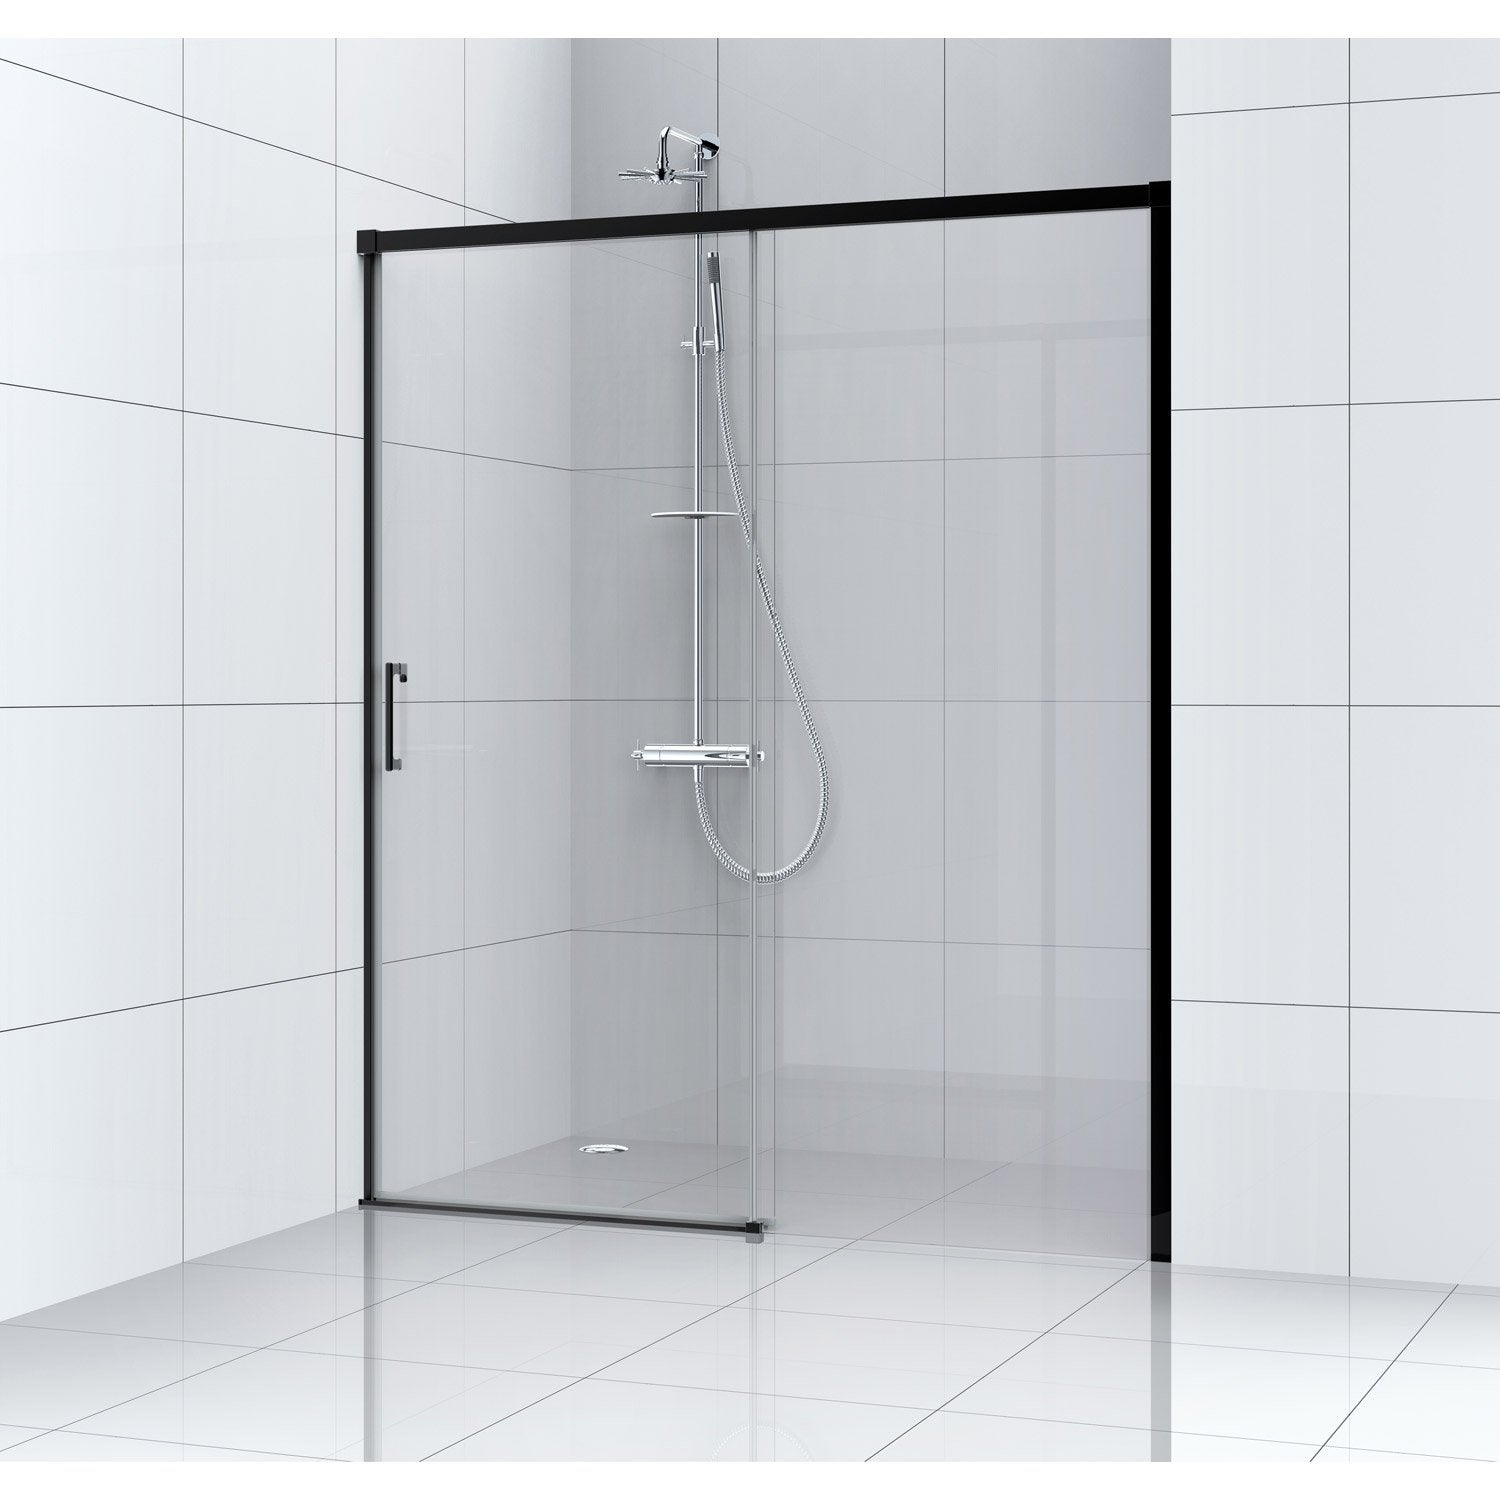 Porte de douche coulissante l 100 cm verre transparent for Porte de douche leroy merlin